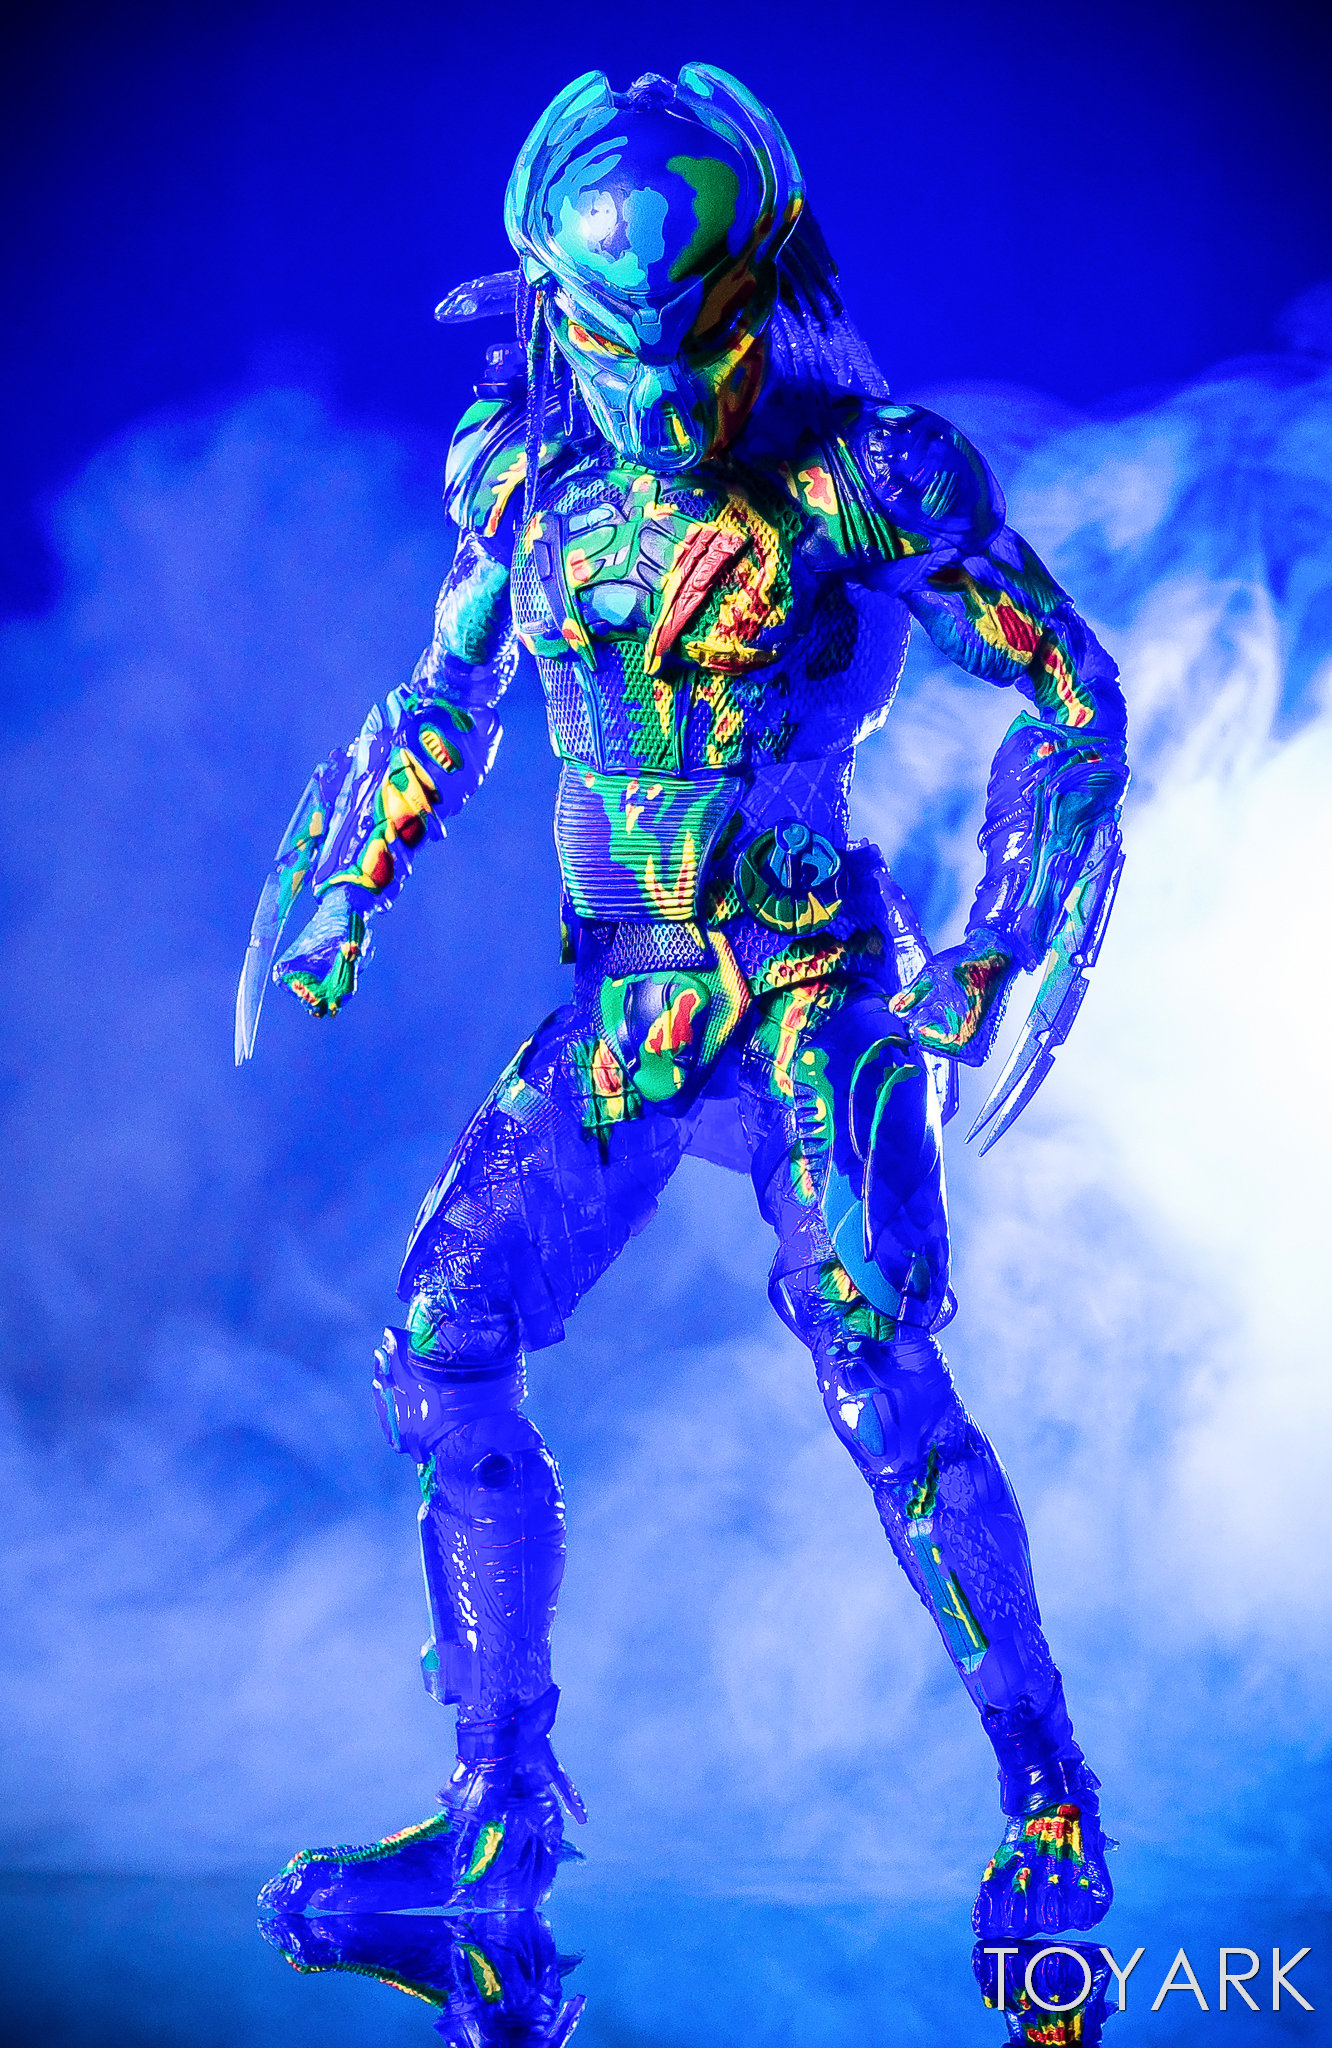 https://news.toyark.com/wp-content/uploads/sites/4/2018/12/NECA-Predator-2018-Thermal-Vision-Predator-017.jpg